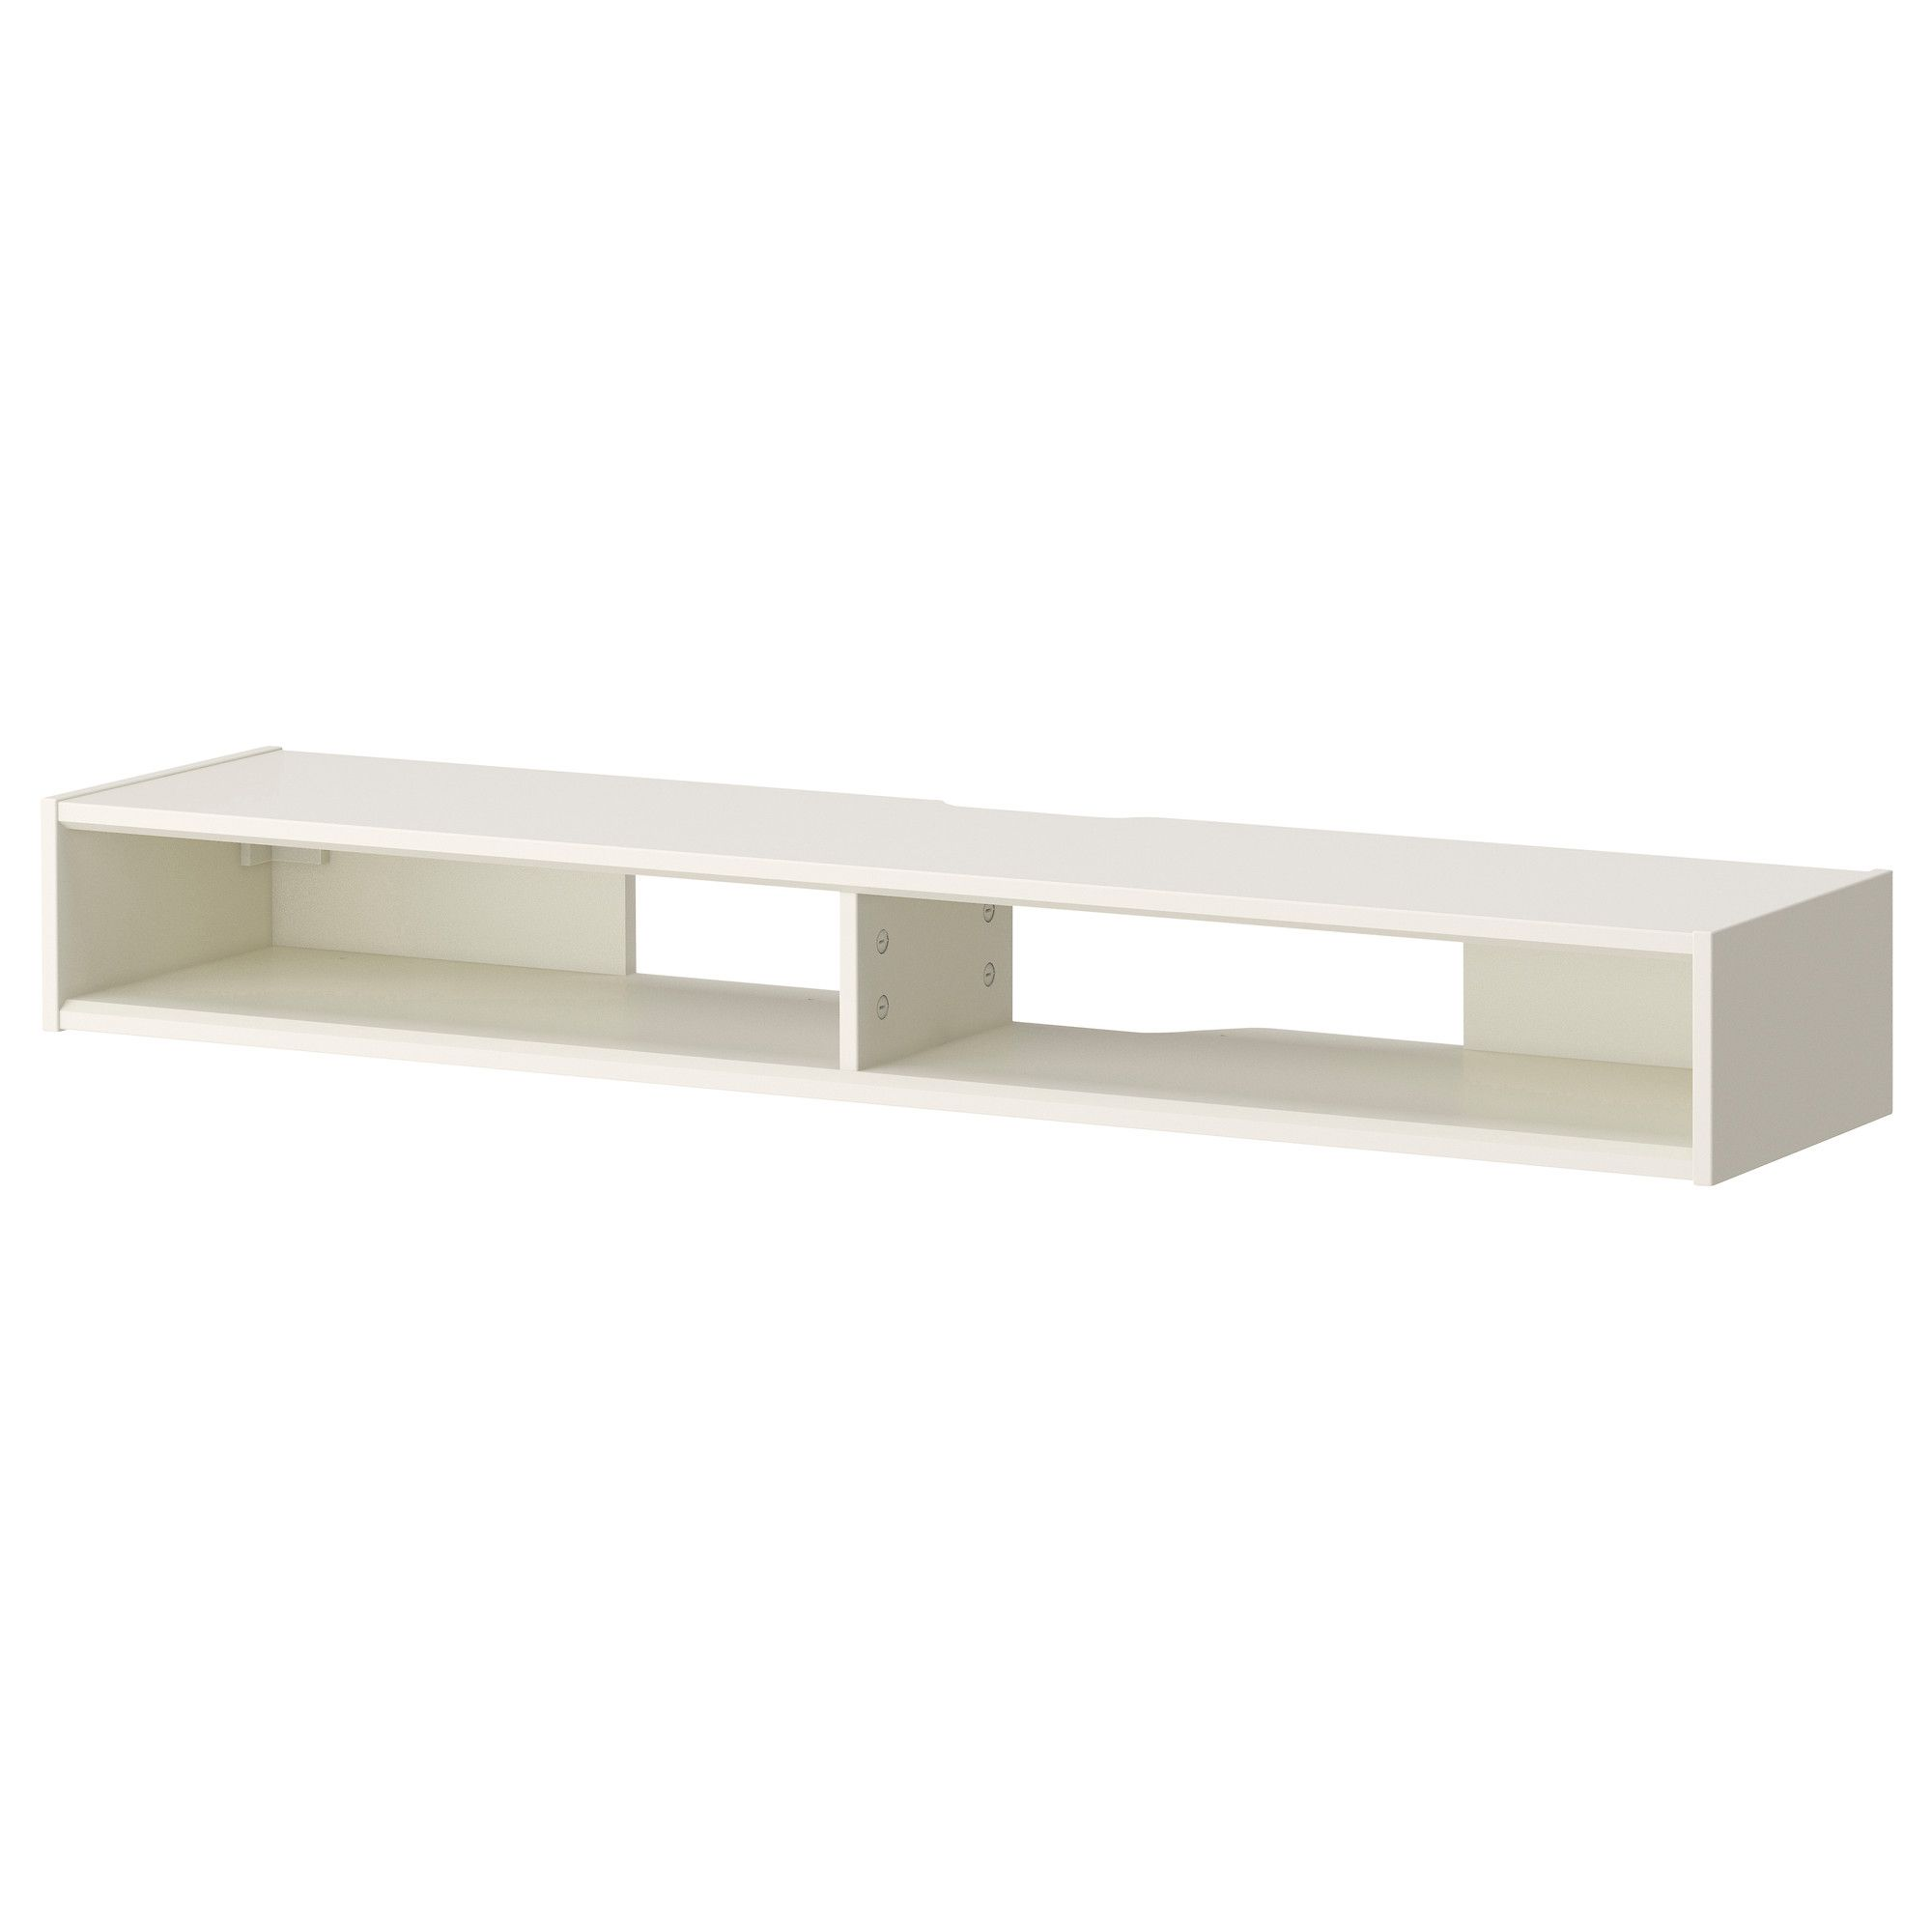 Etagere Tele Ikea - Rams Tra Media Shelf Ikea Idea For Tv Shelf Homie [mjhdah]http://www.ikea.com/ie/en/images/products/persby-wall-shelf-white__0169917_pe325560_s5.jpg